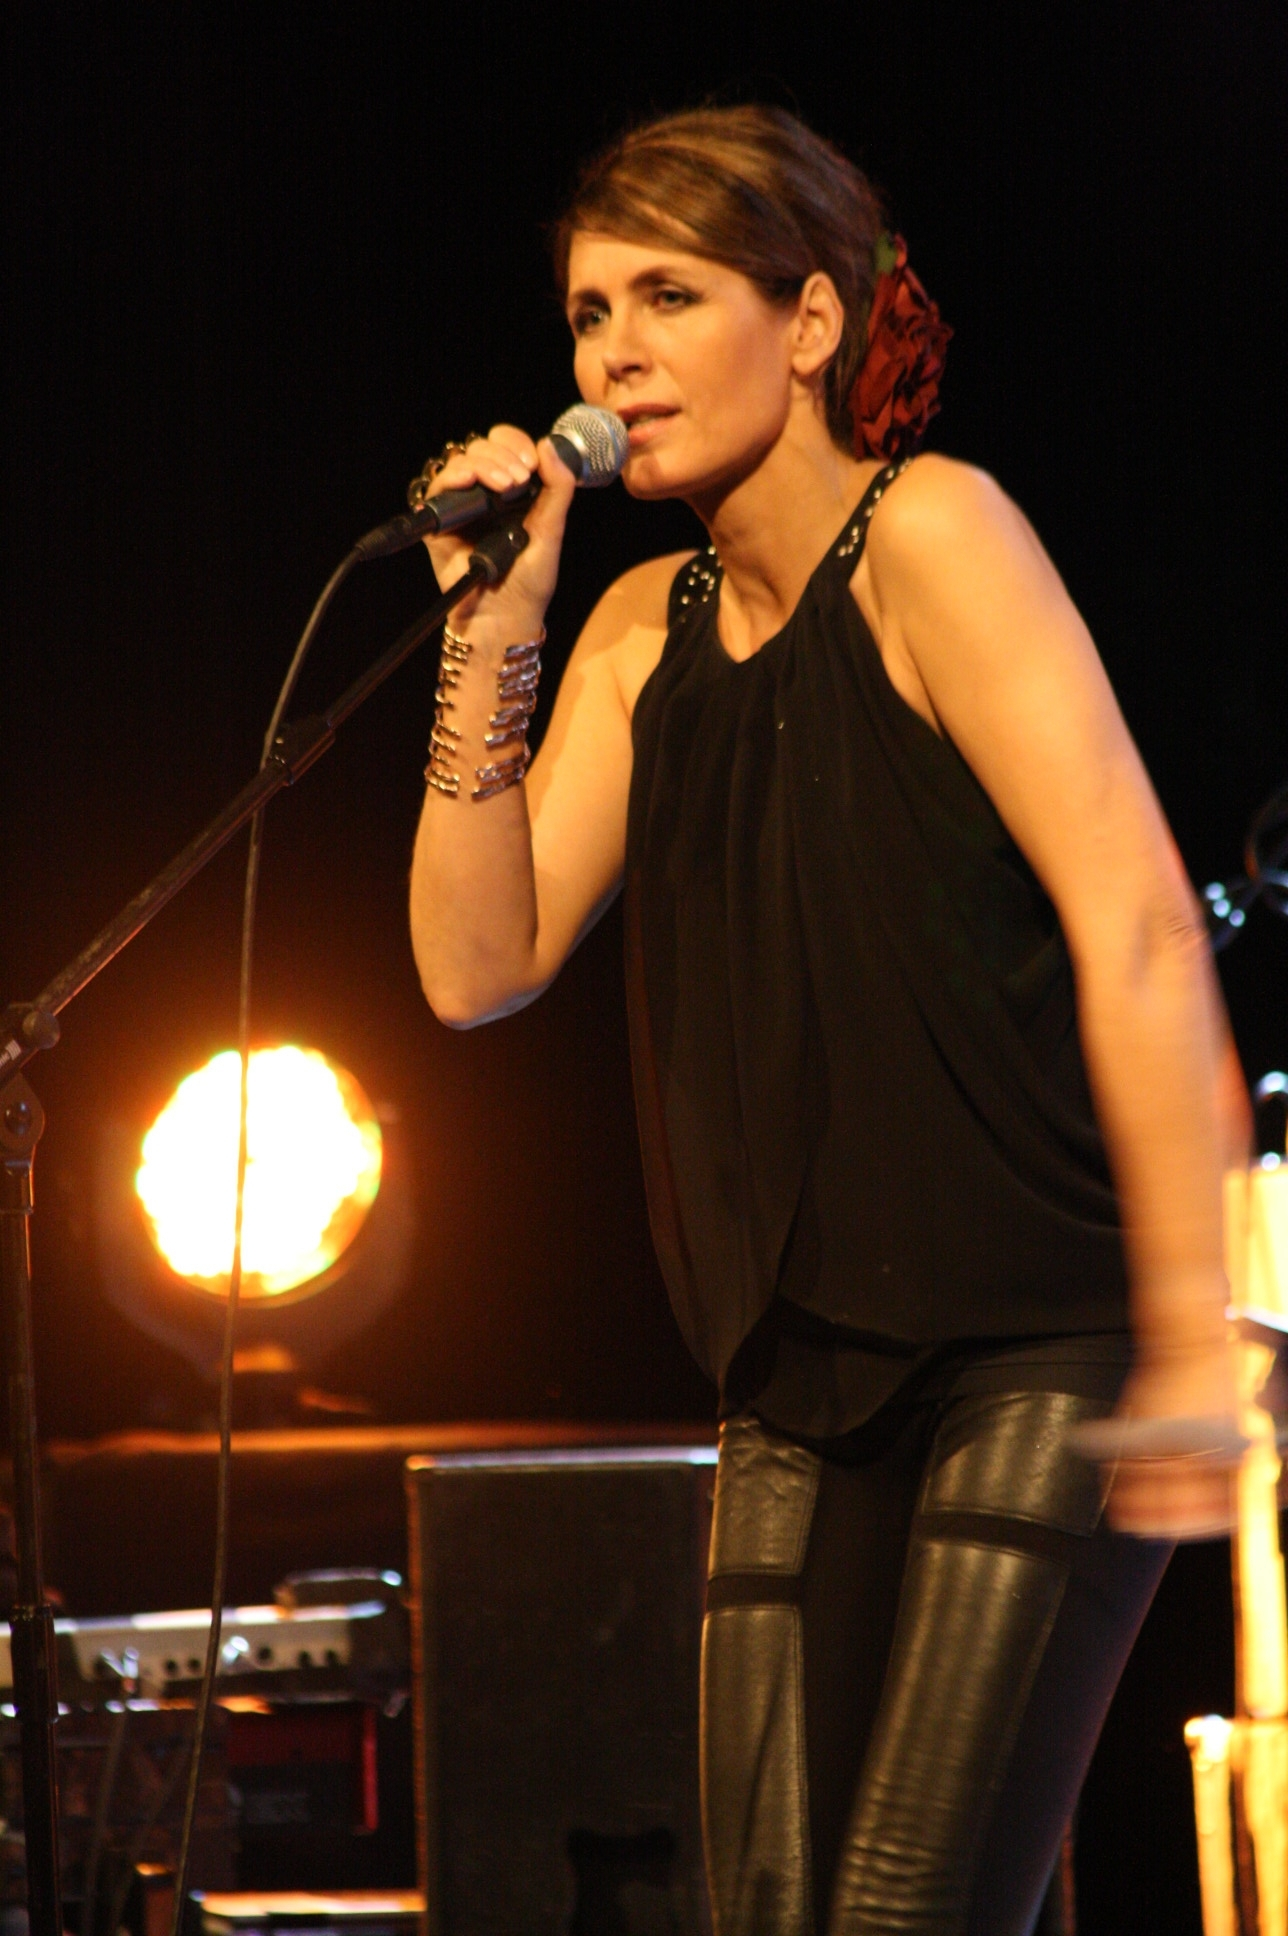 Kari Bremnes Live In Hannover 2012 Access2music